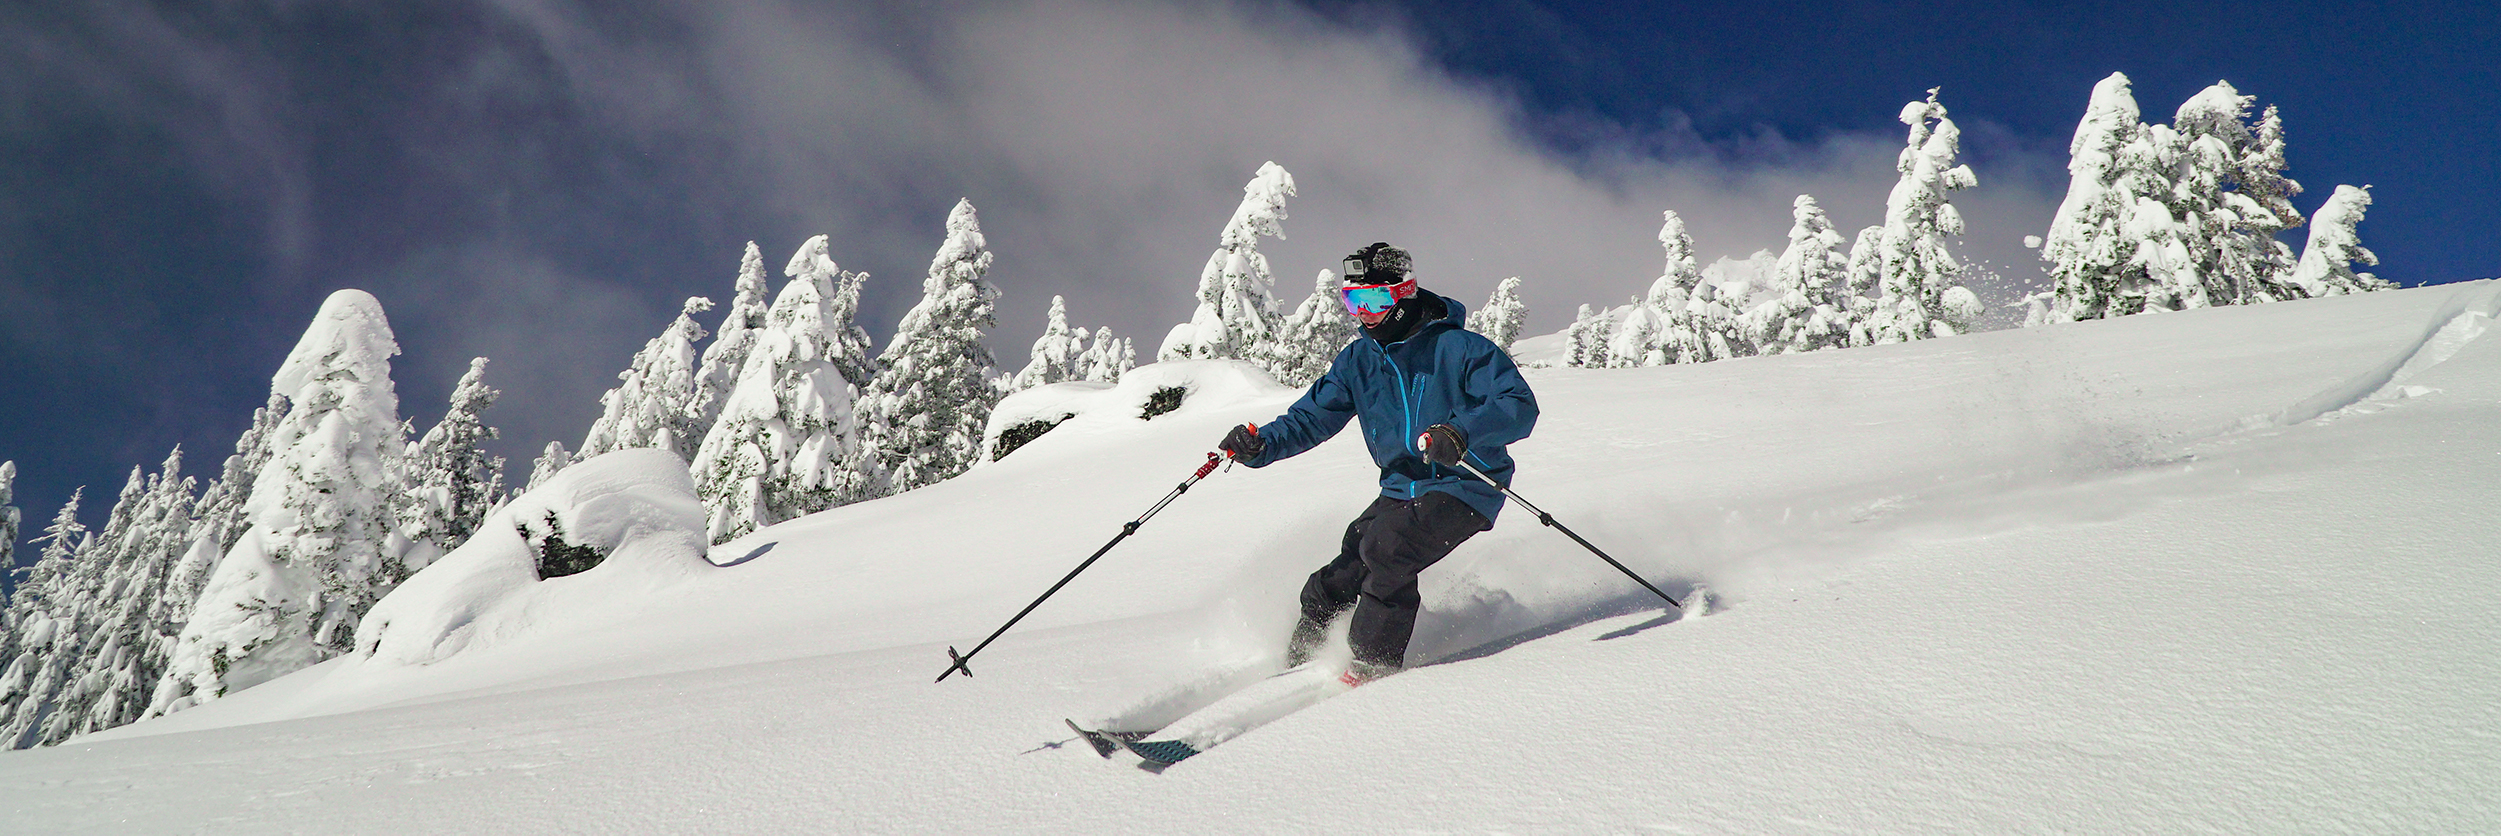 Season Passes At Mt. Ashland Are All-access Passes To Local Mountain Fun All Winter Long!